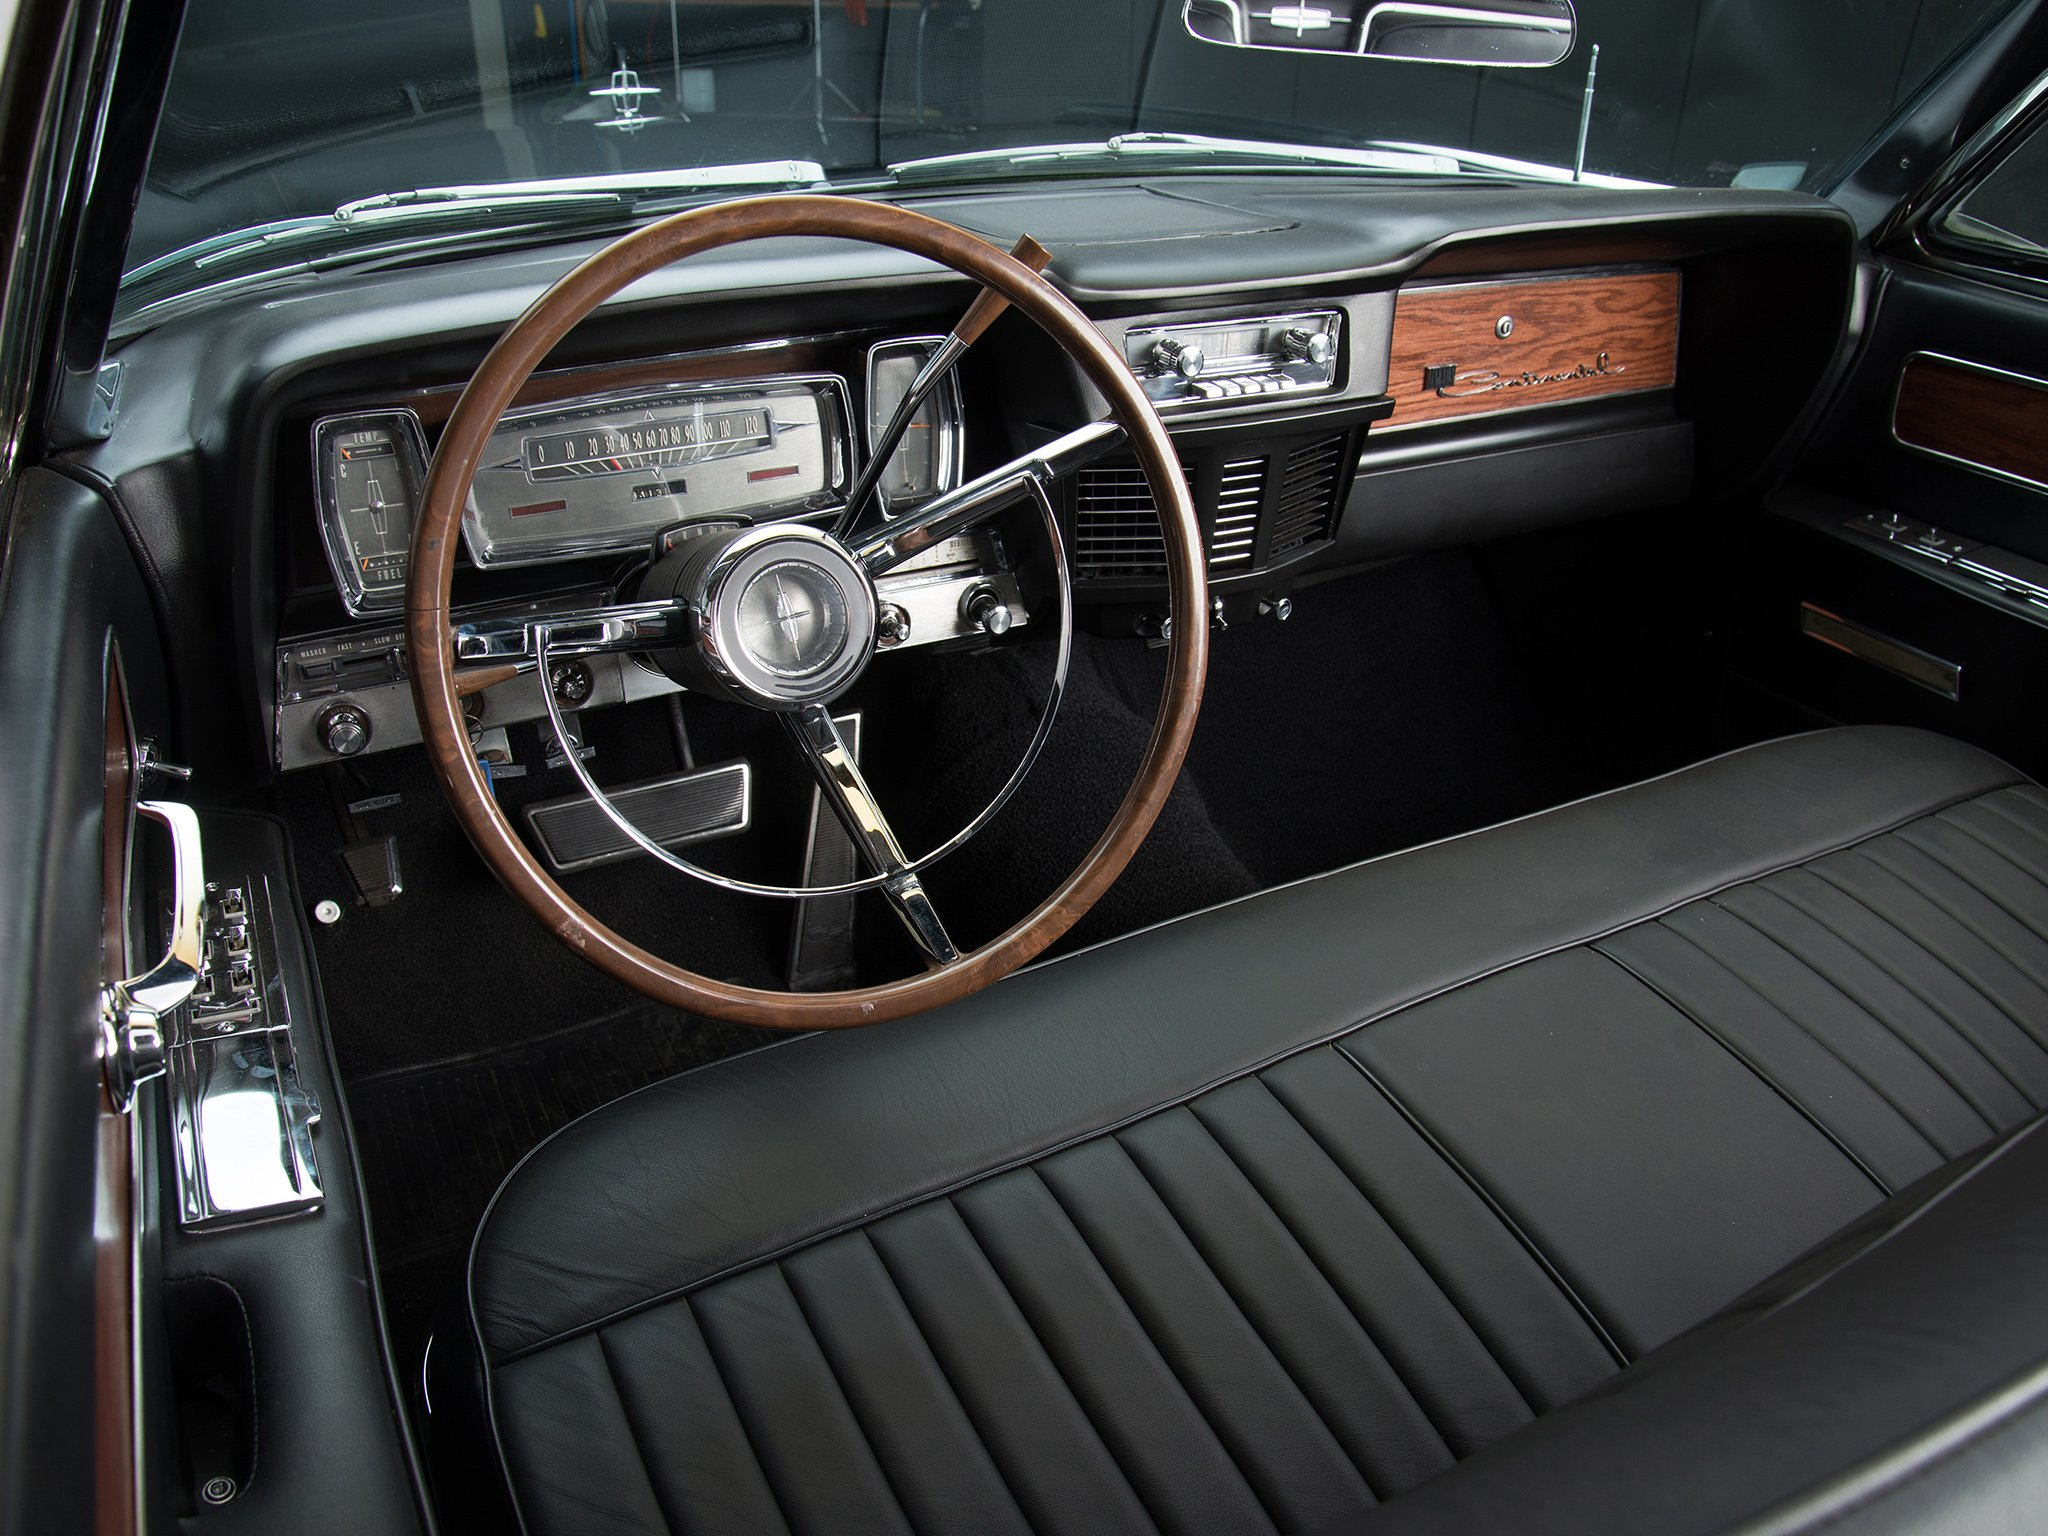 1963 Lincoln Continental Interior Images Galleries With A Bite